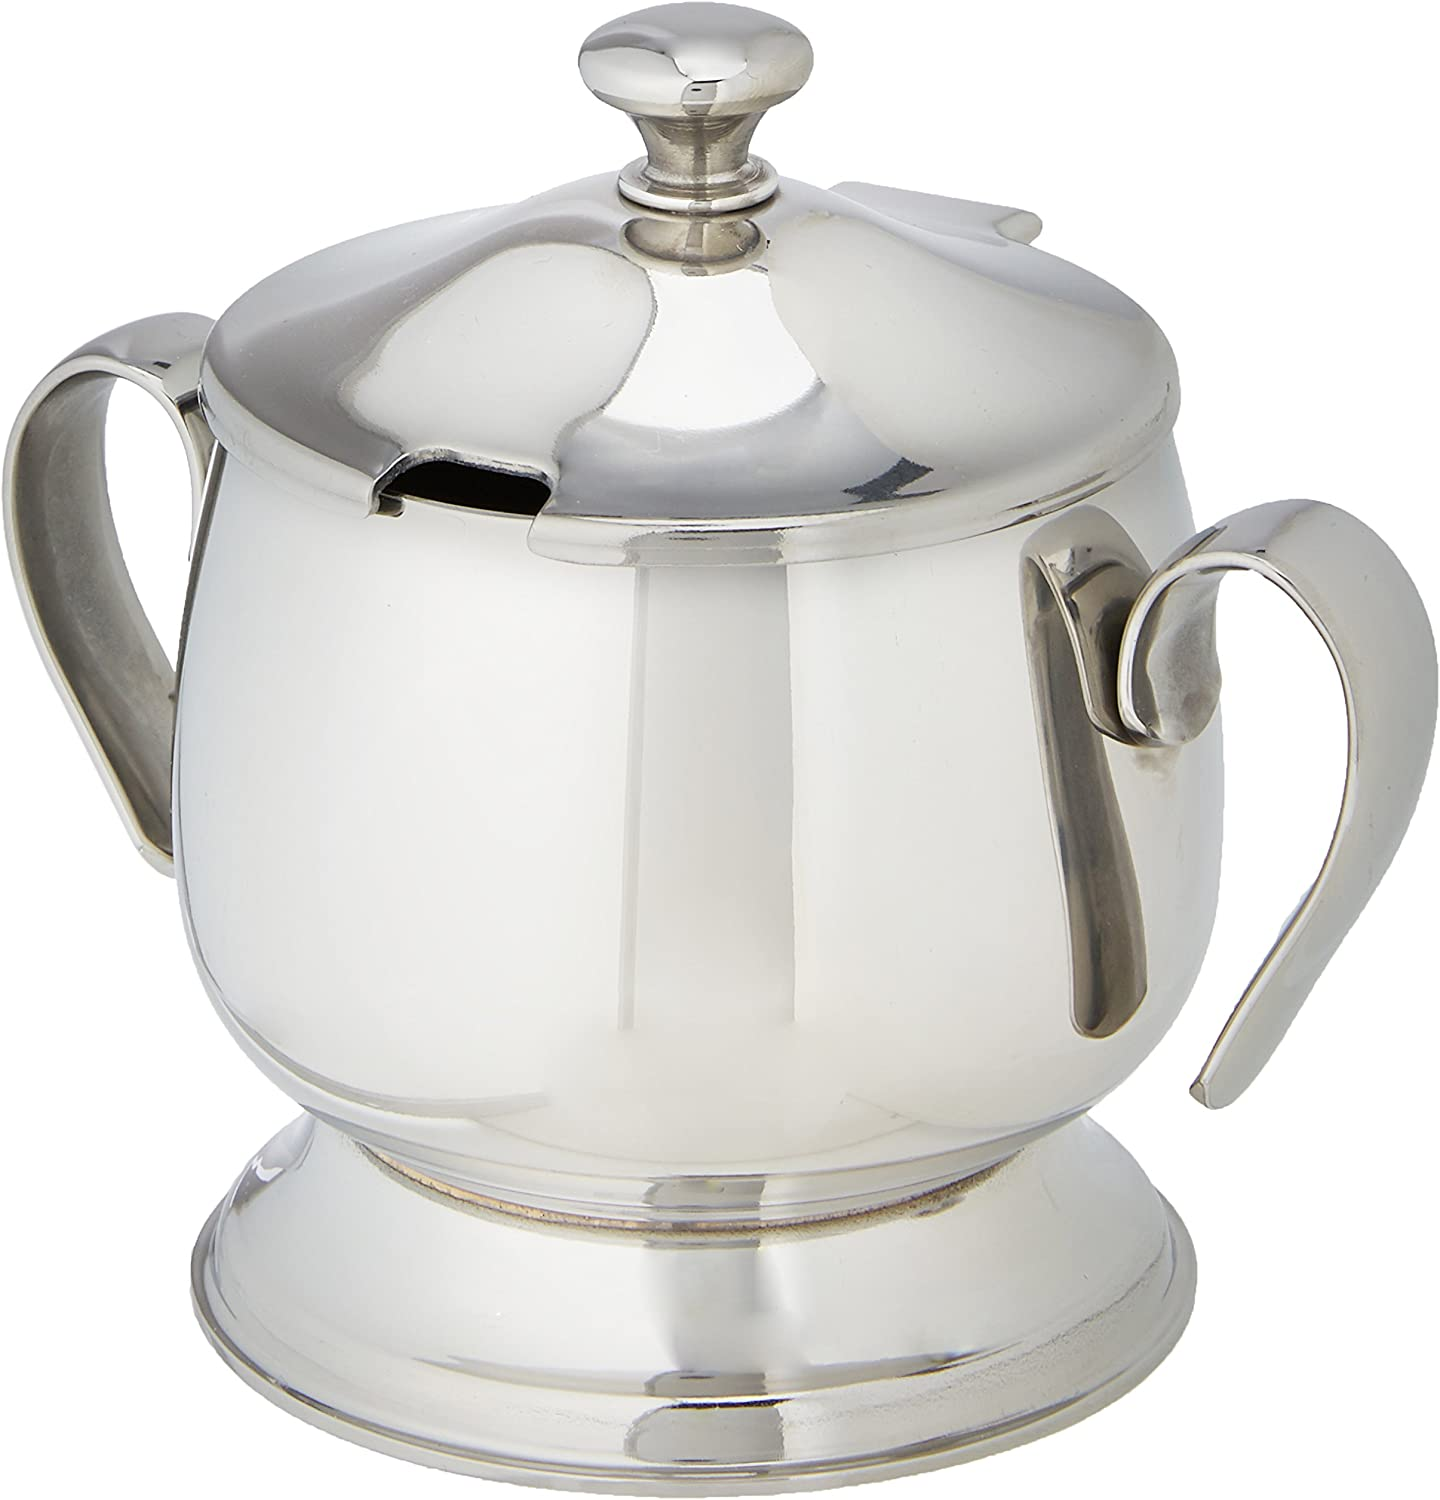 Mepra Bombata 27CL. Sugar Base Silver – Popular shop is the lowest price challenge Serveware D We OFFer at cheap prices Finish